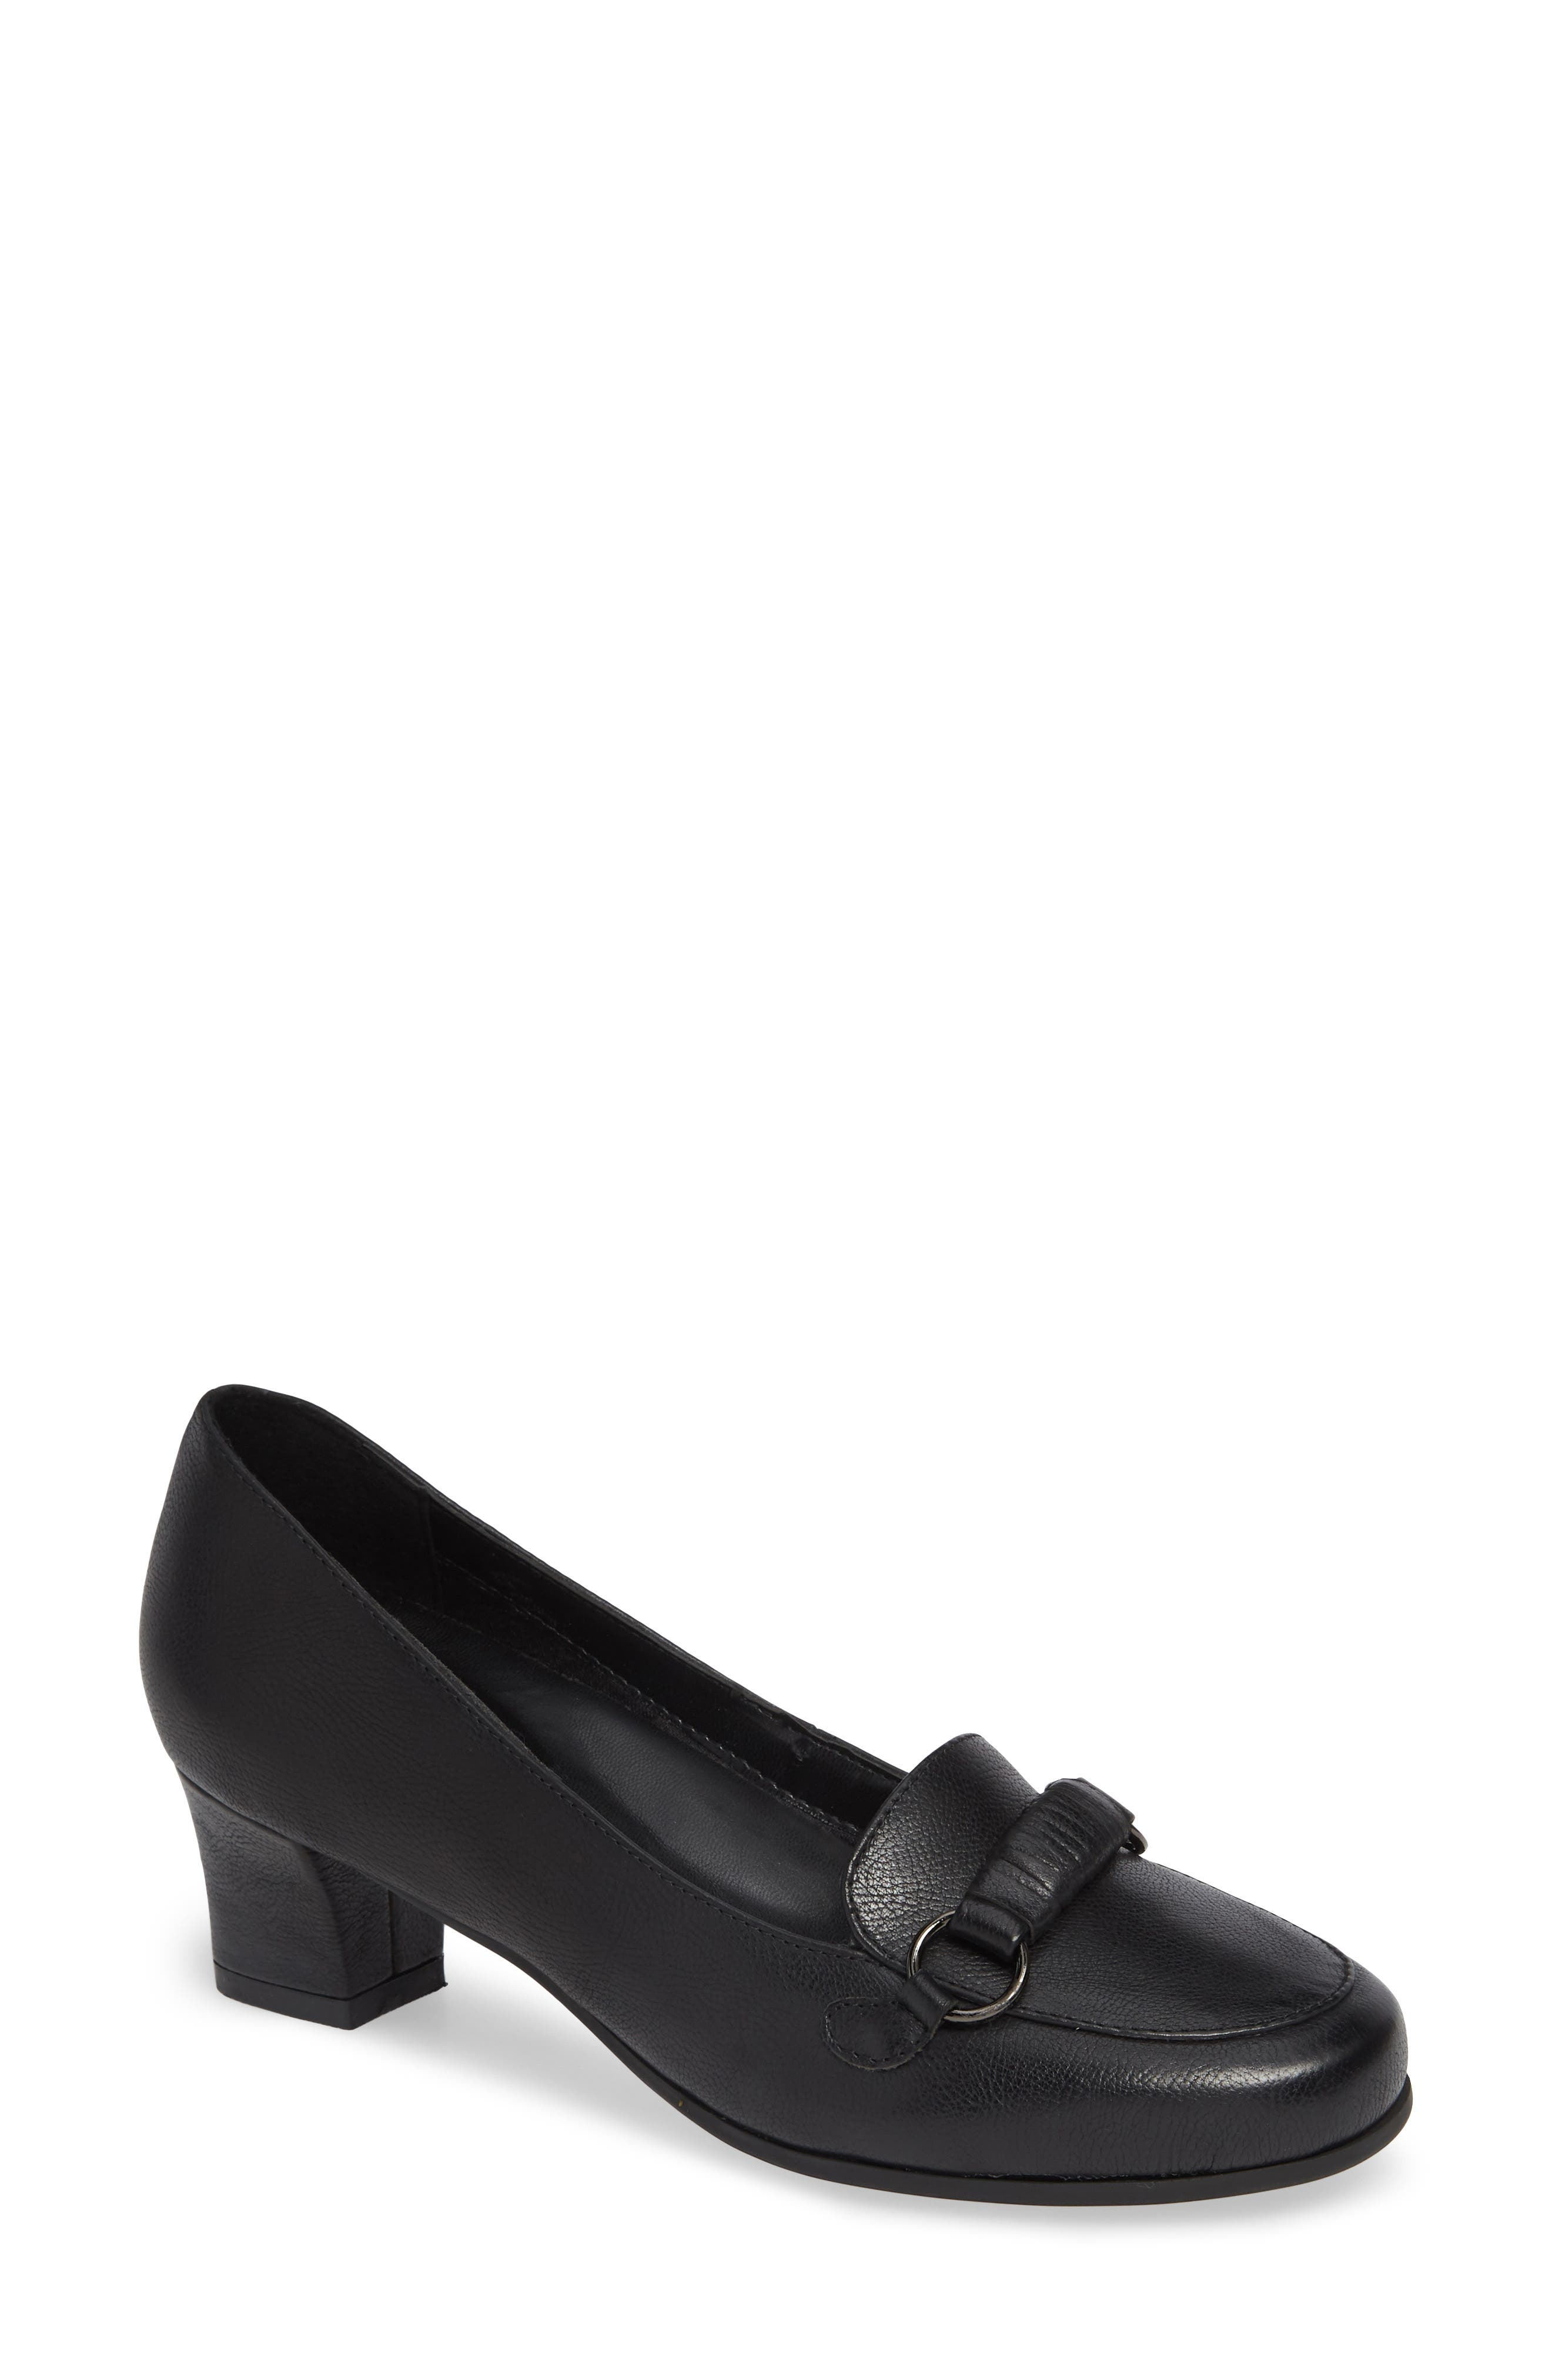 Image of David Tate Perky Loafer Pump - Multiple Widths Available